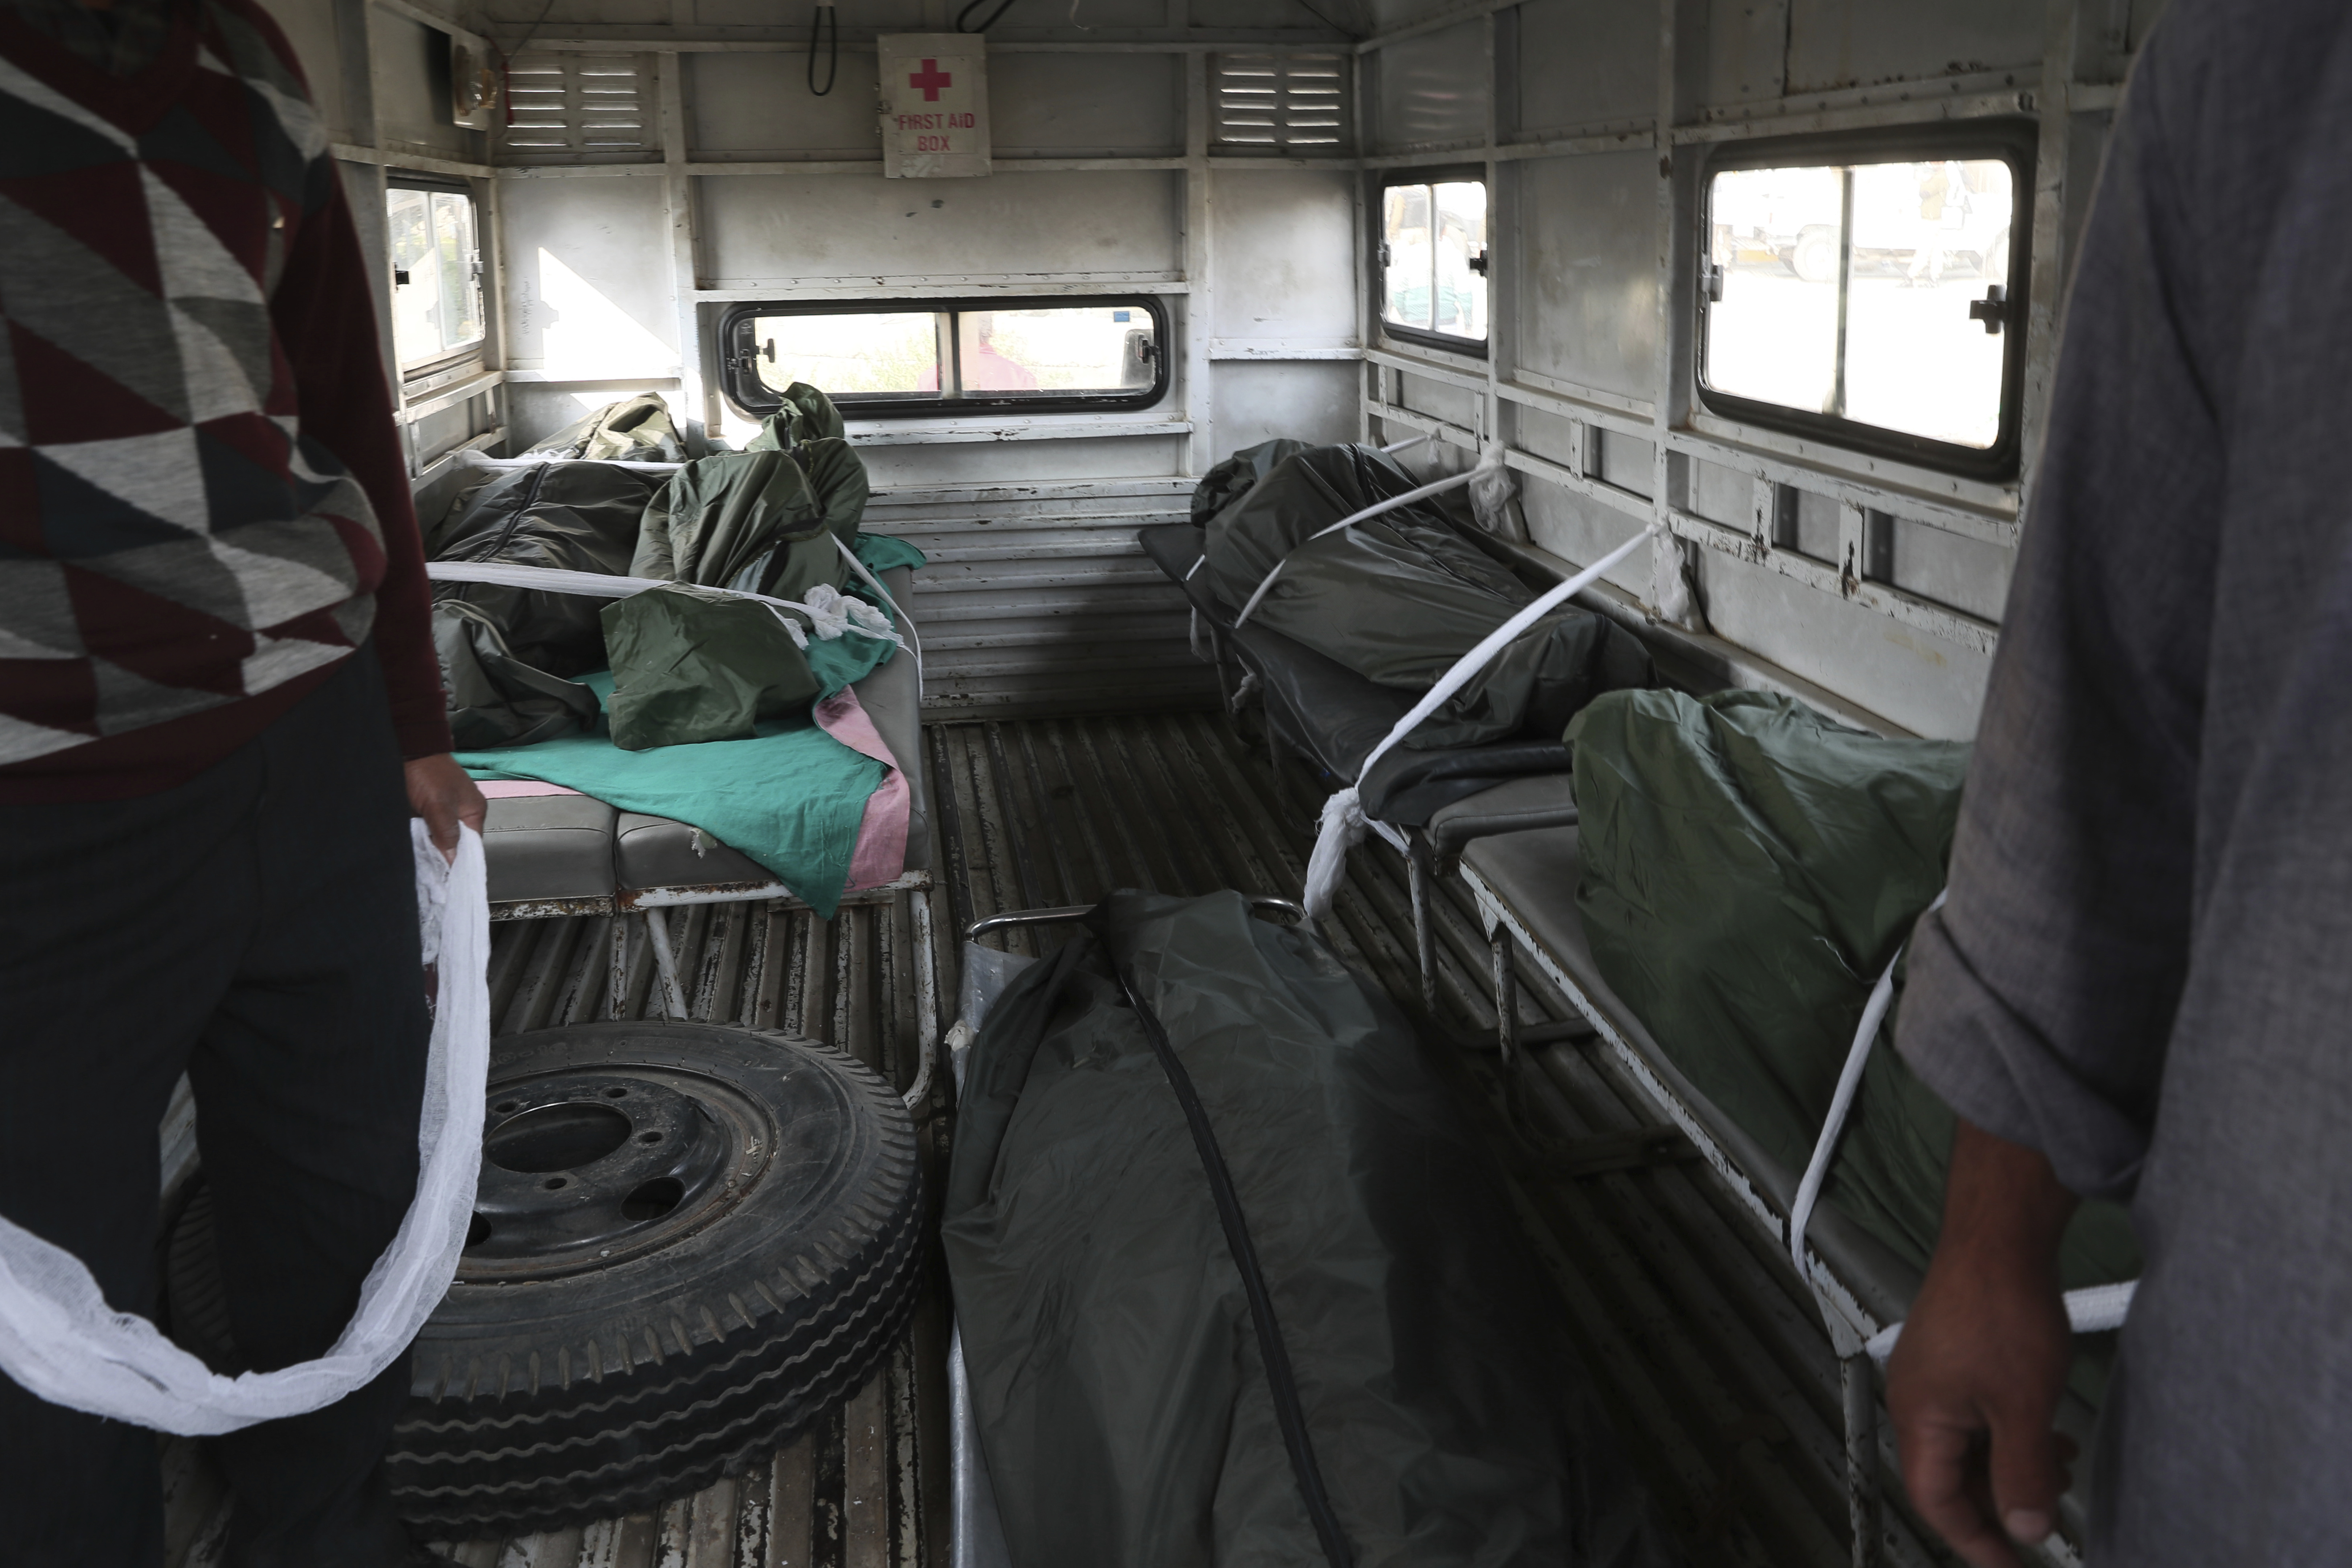 Bodies of Indian laborers who were shot dead by gunmen are seen inside an ambulance outside a hospital in Kulgam on October 30, 2019